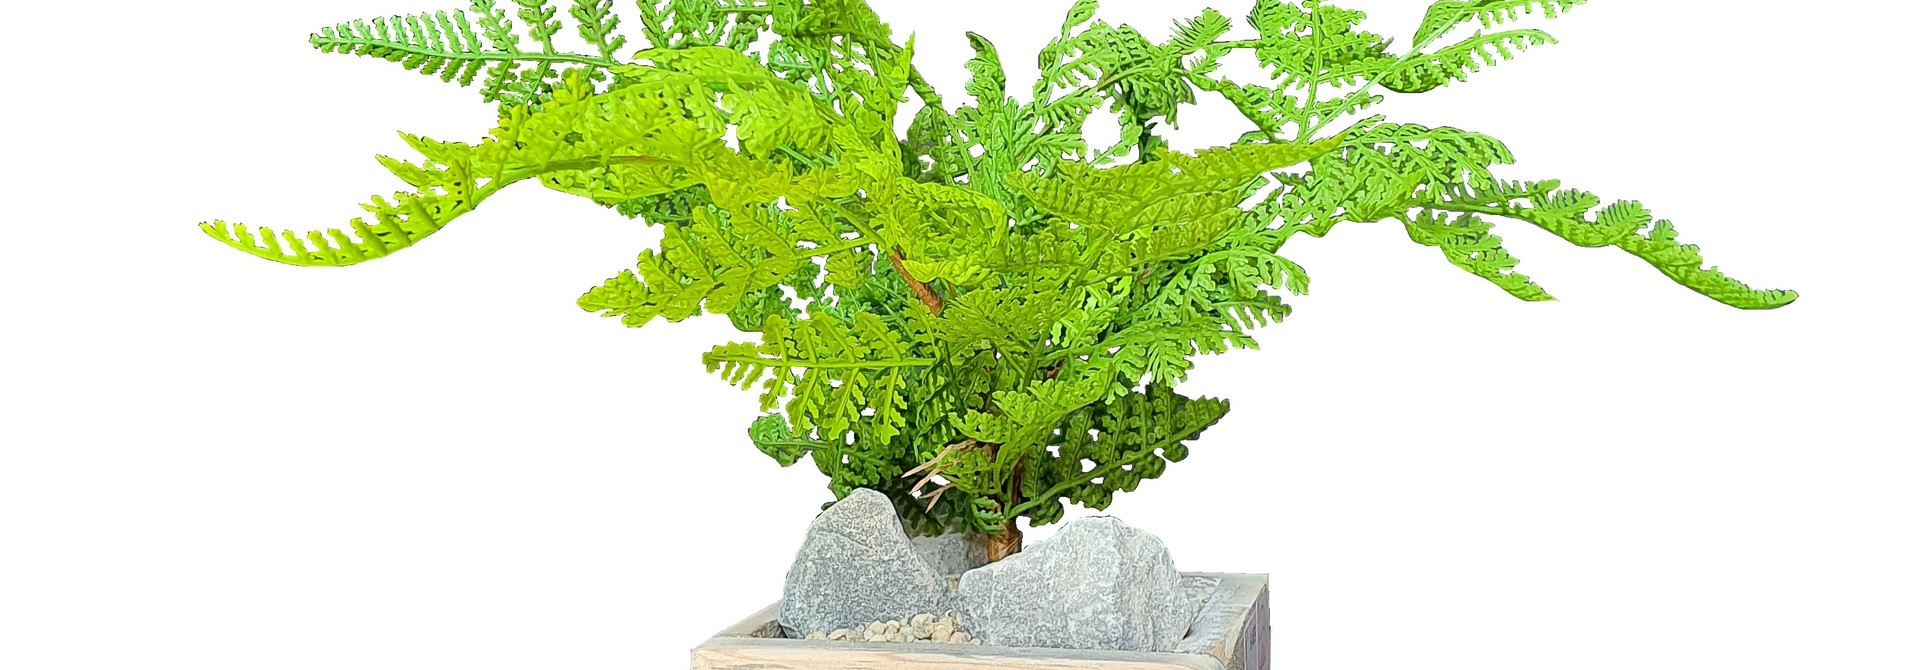 silk arr	old dutch	fern forest J13